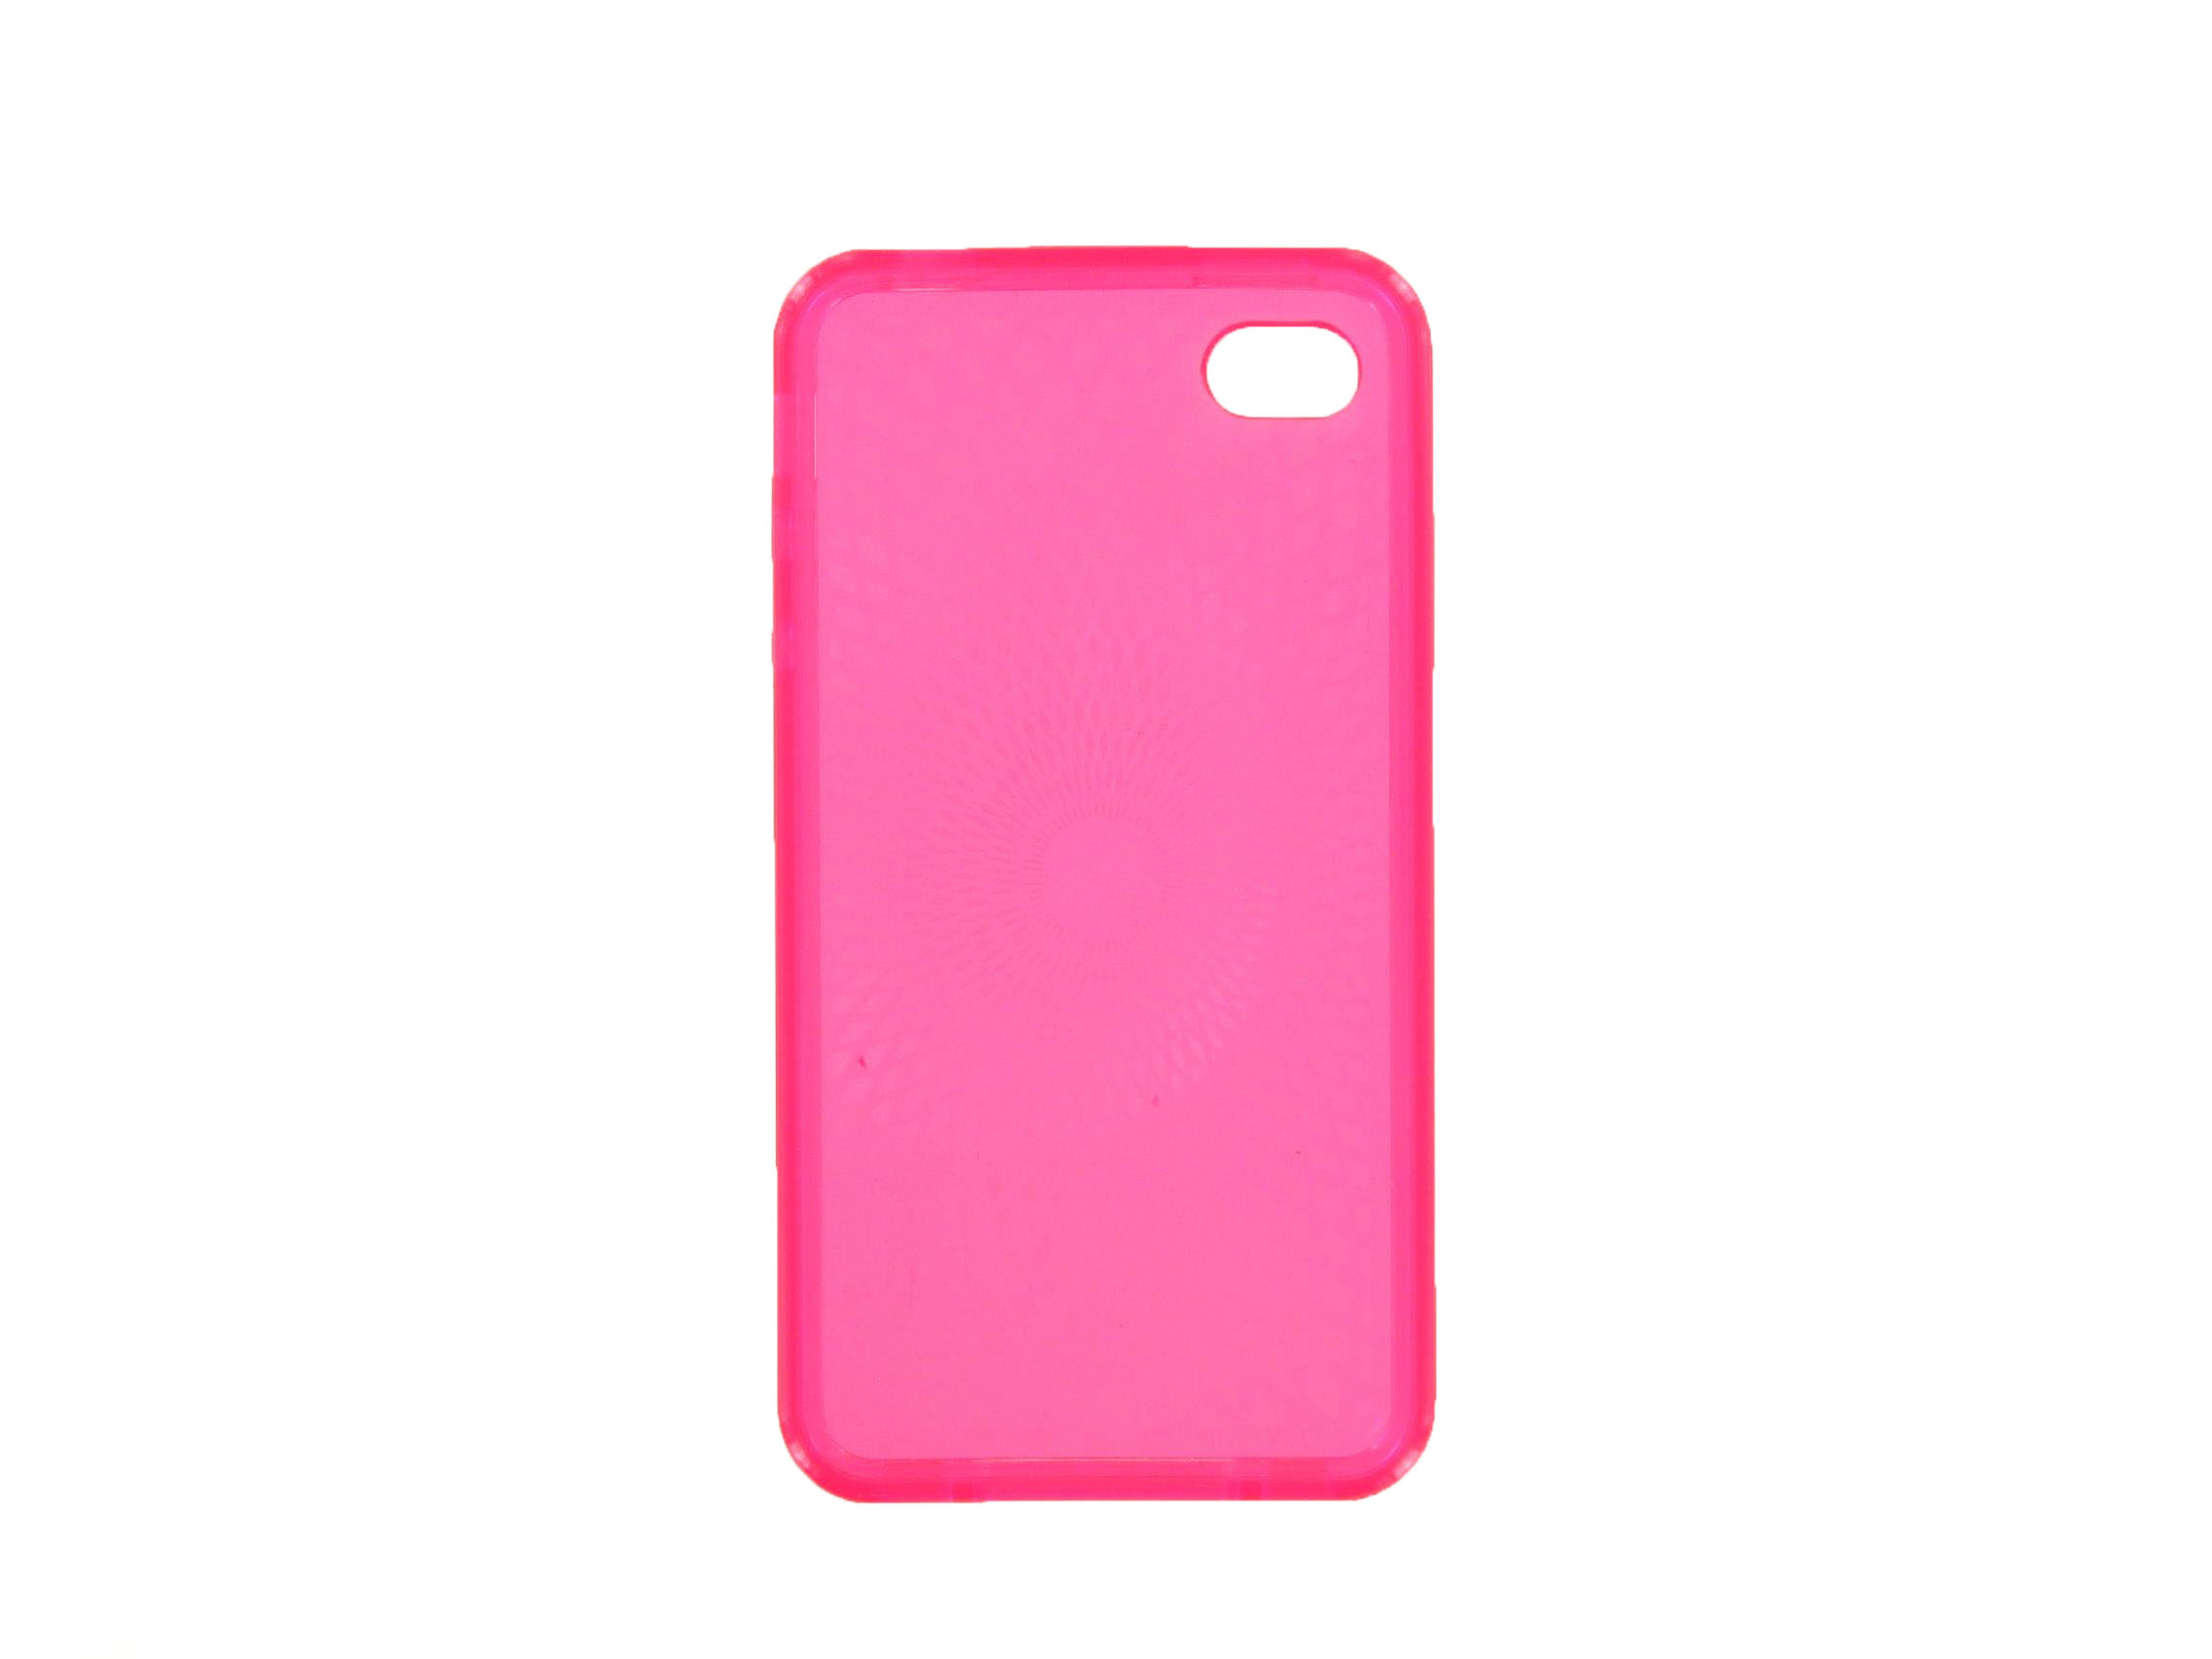 Sprint TPU Case for iPhone 5 - Pink